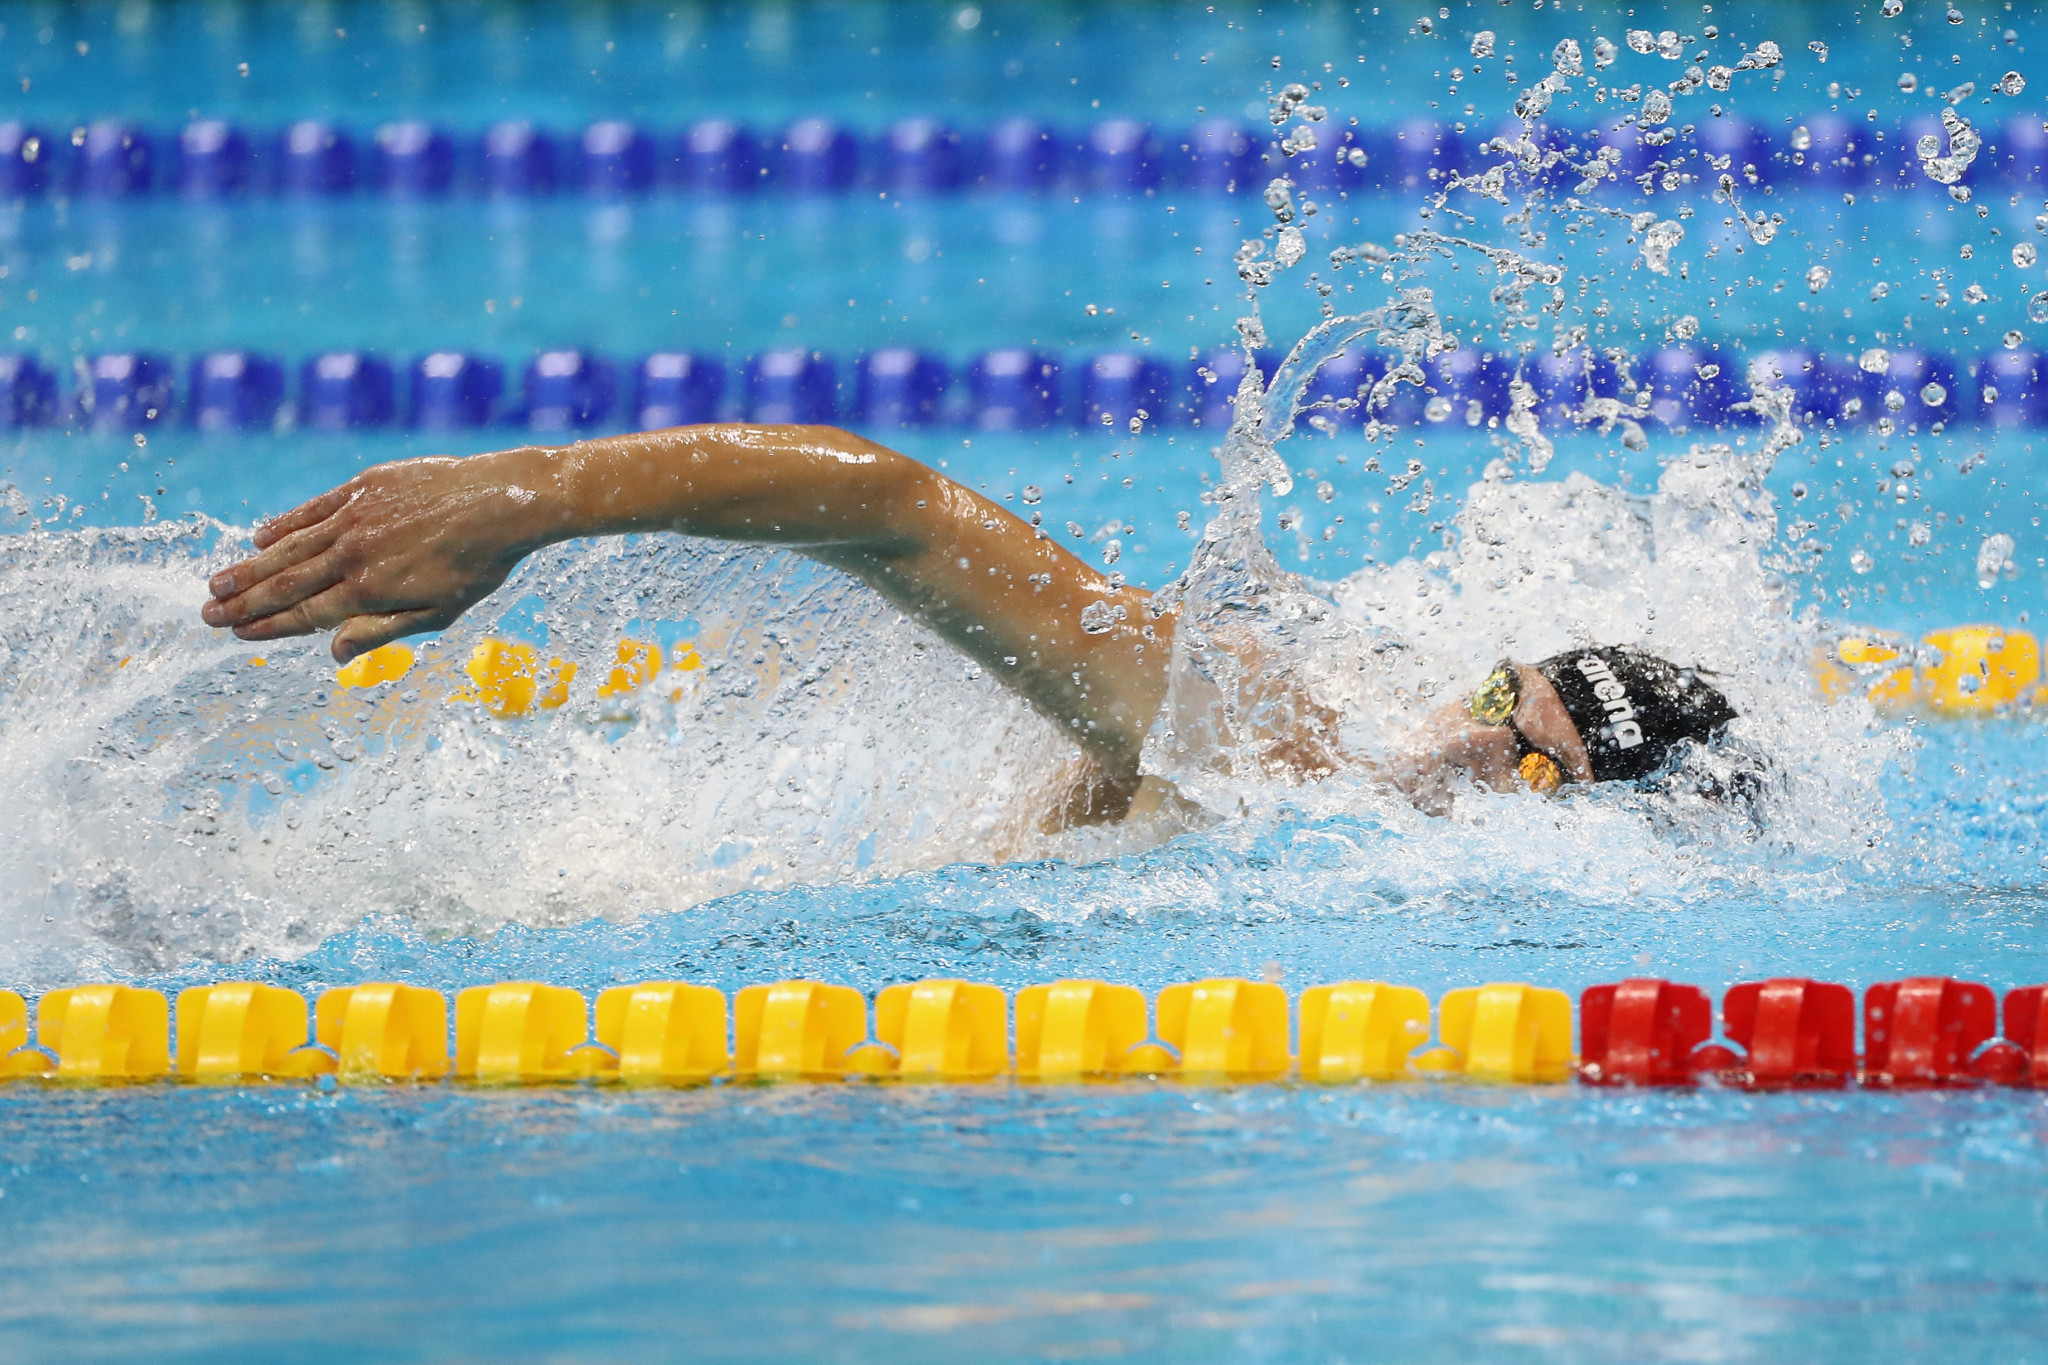 Ihar Boki of Belarus set an S13 world record as the World Para Swimming World Series finale began in Berlin, Germany ©Getty Images